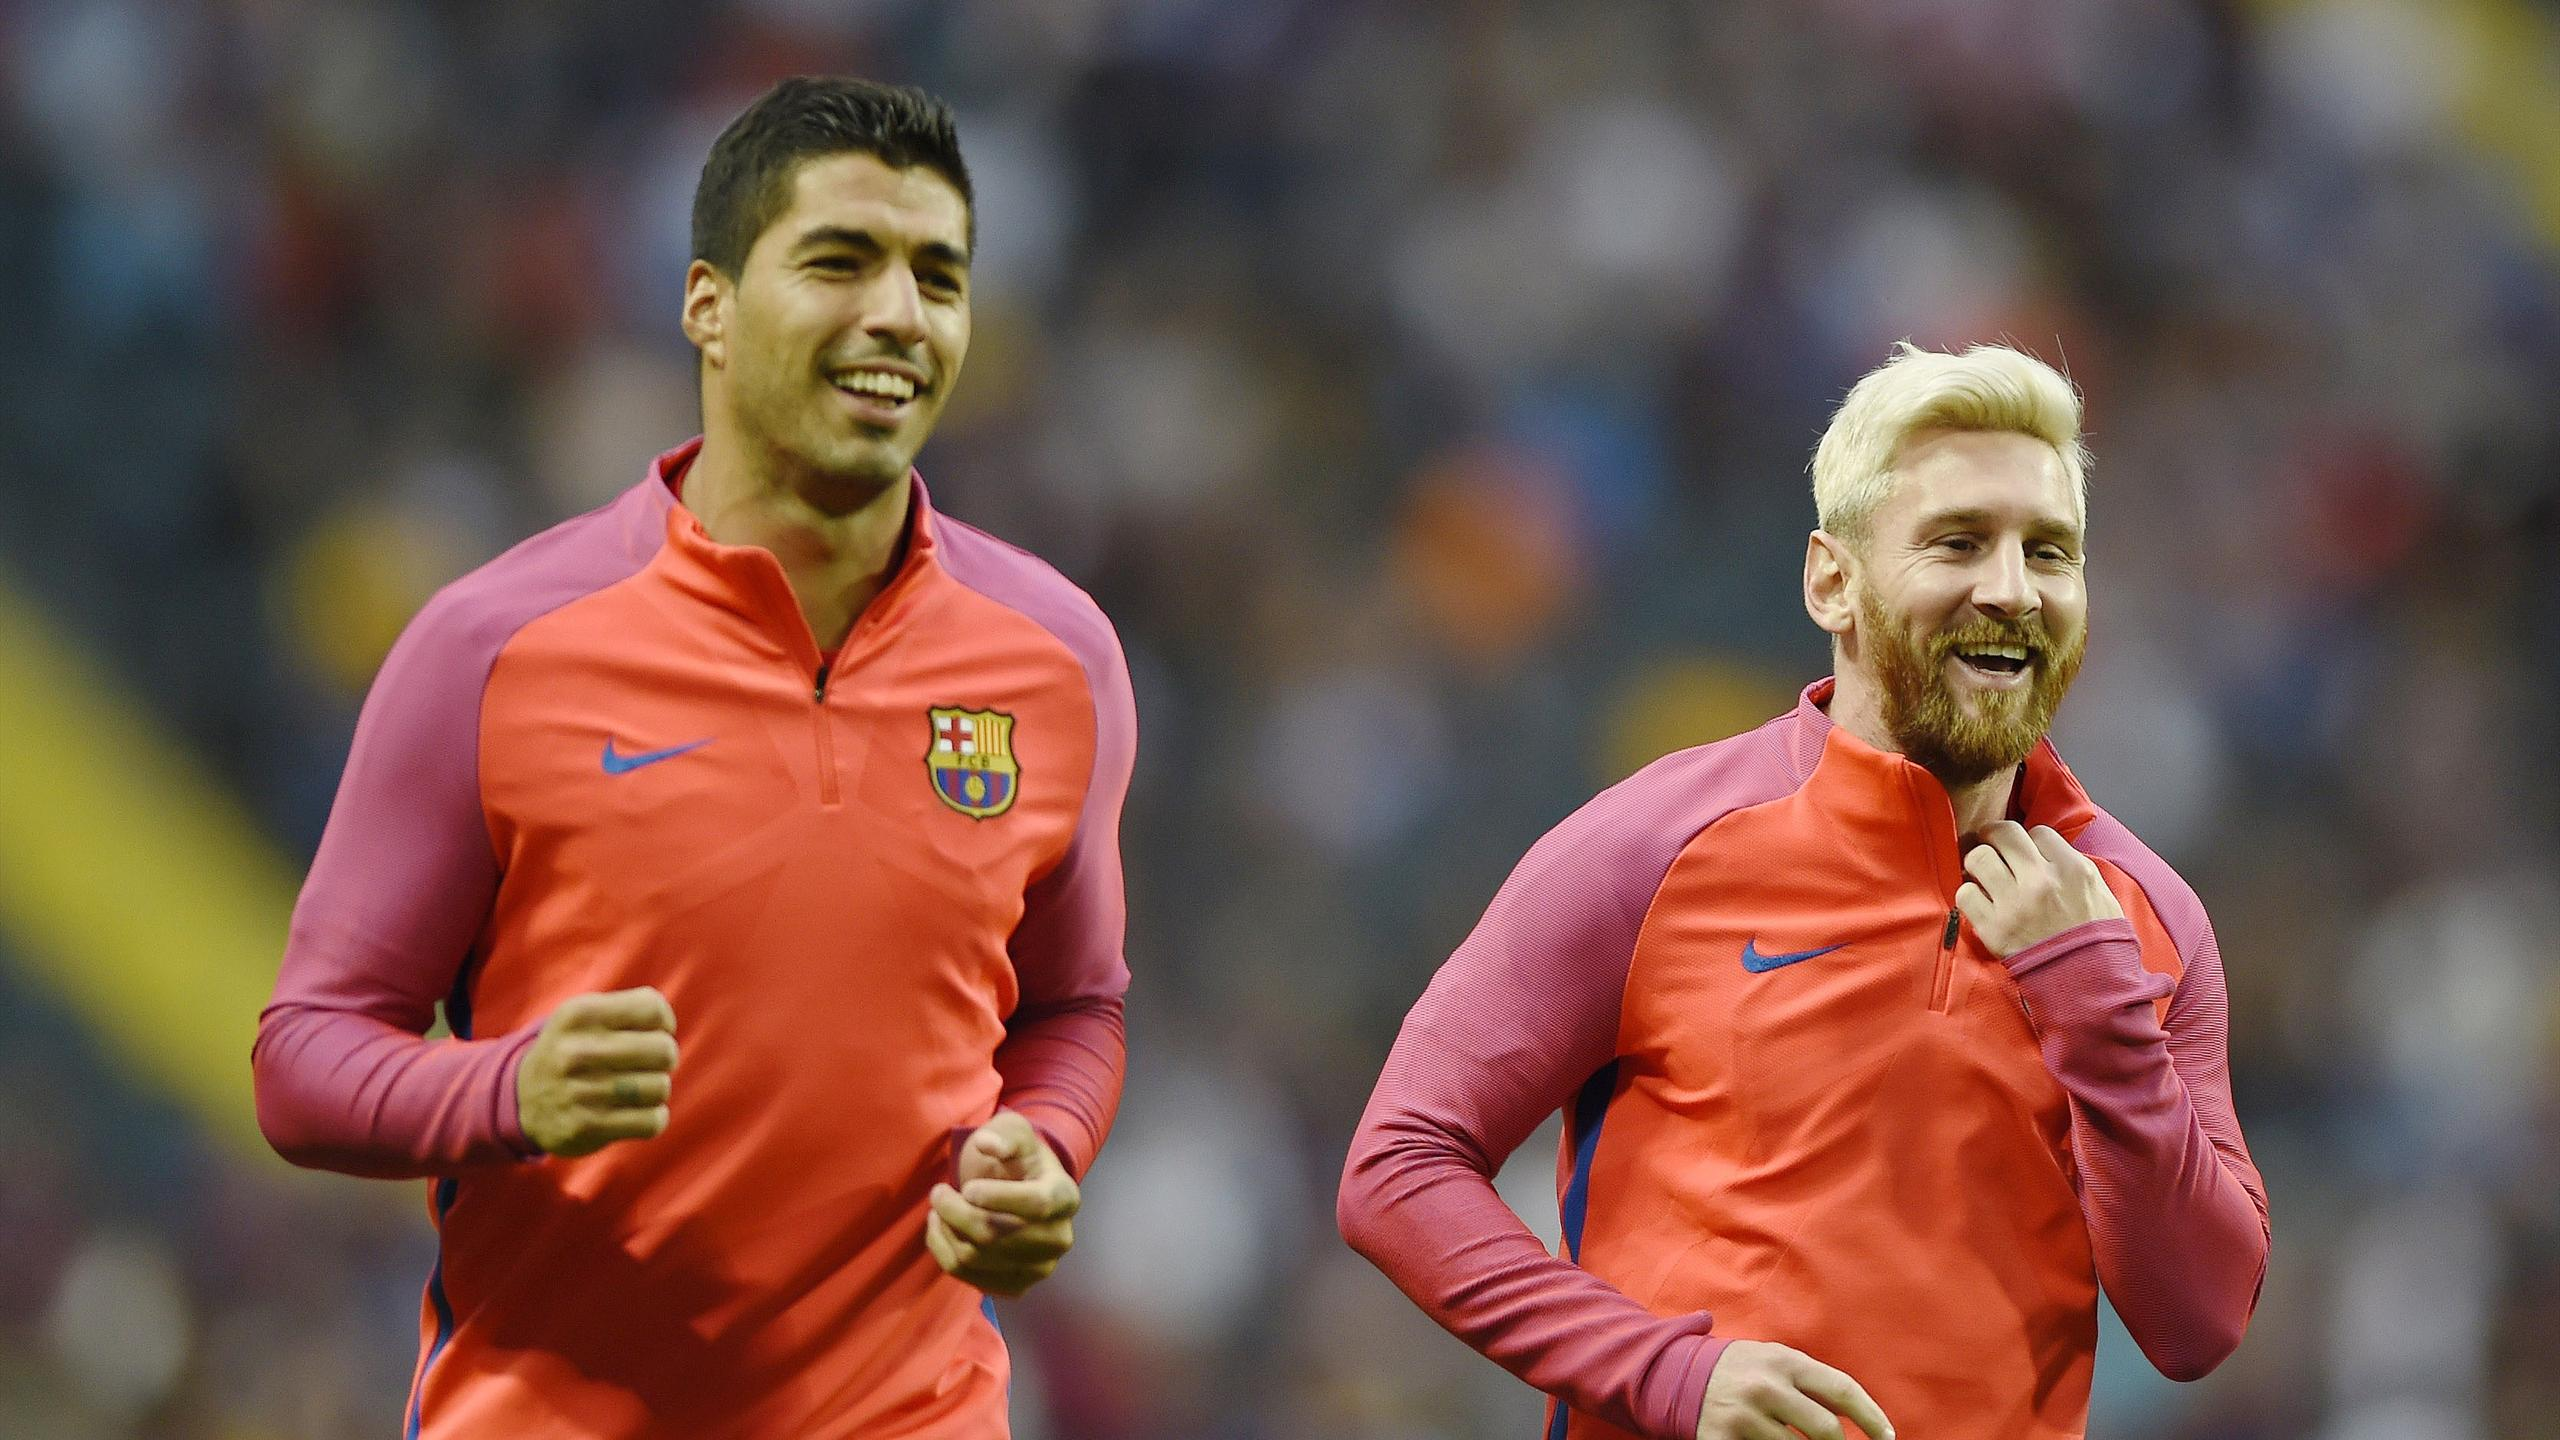 Barcelona forwards Luis Suarez and Lionel Messi